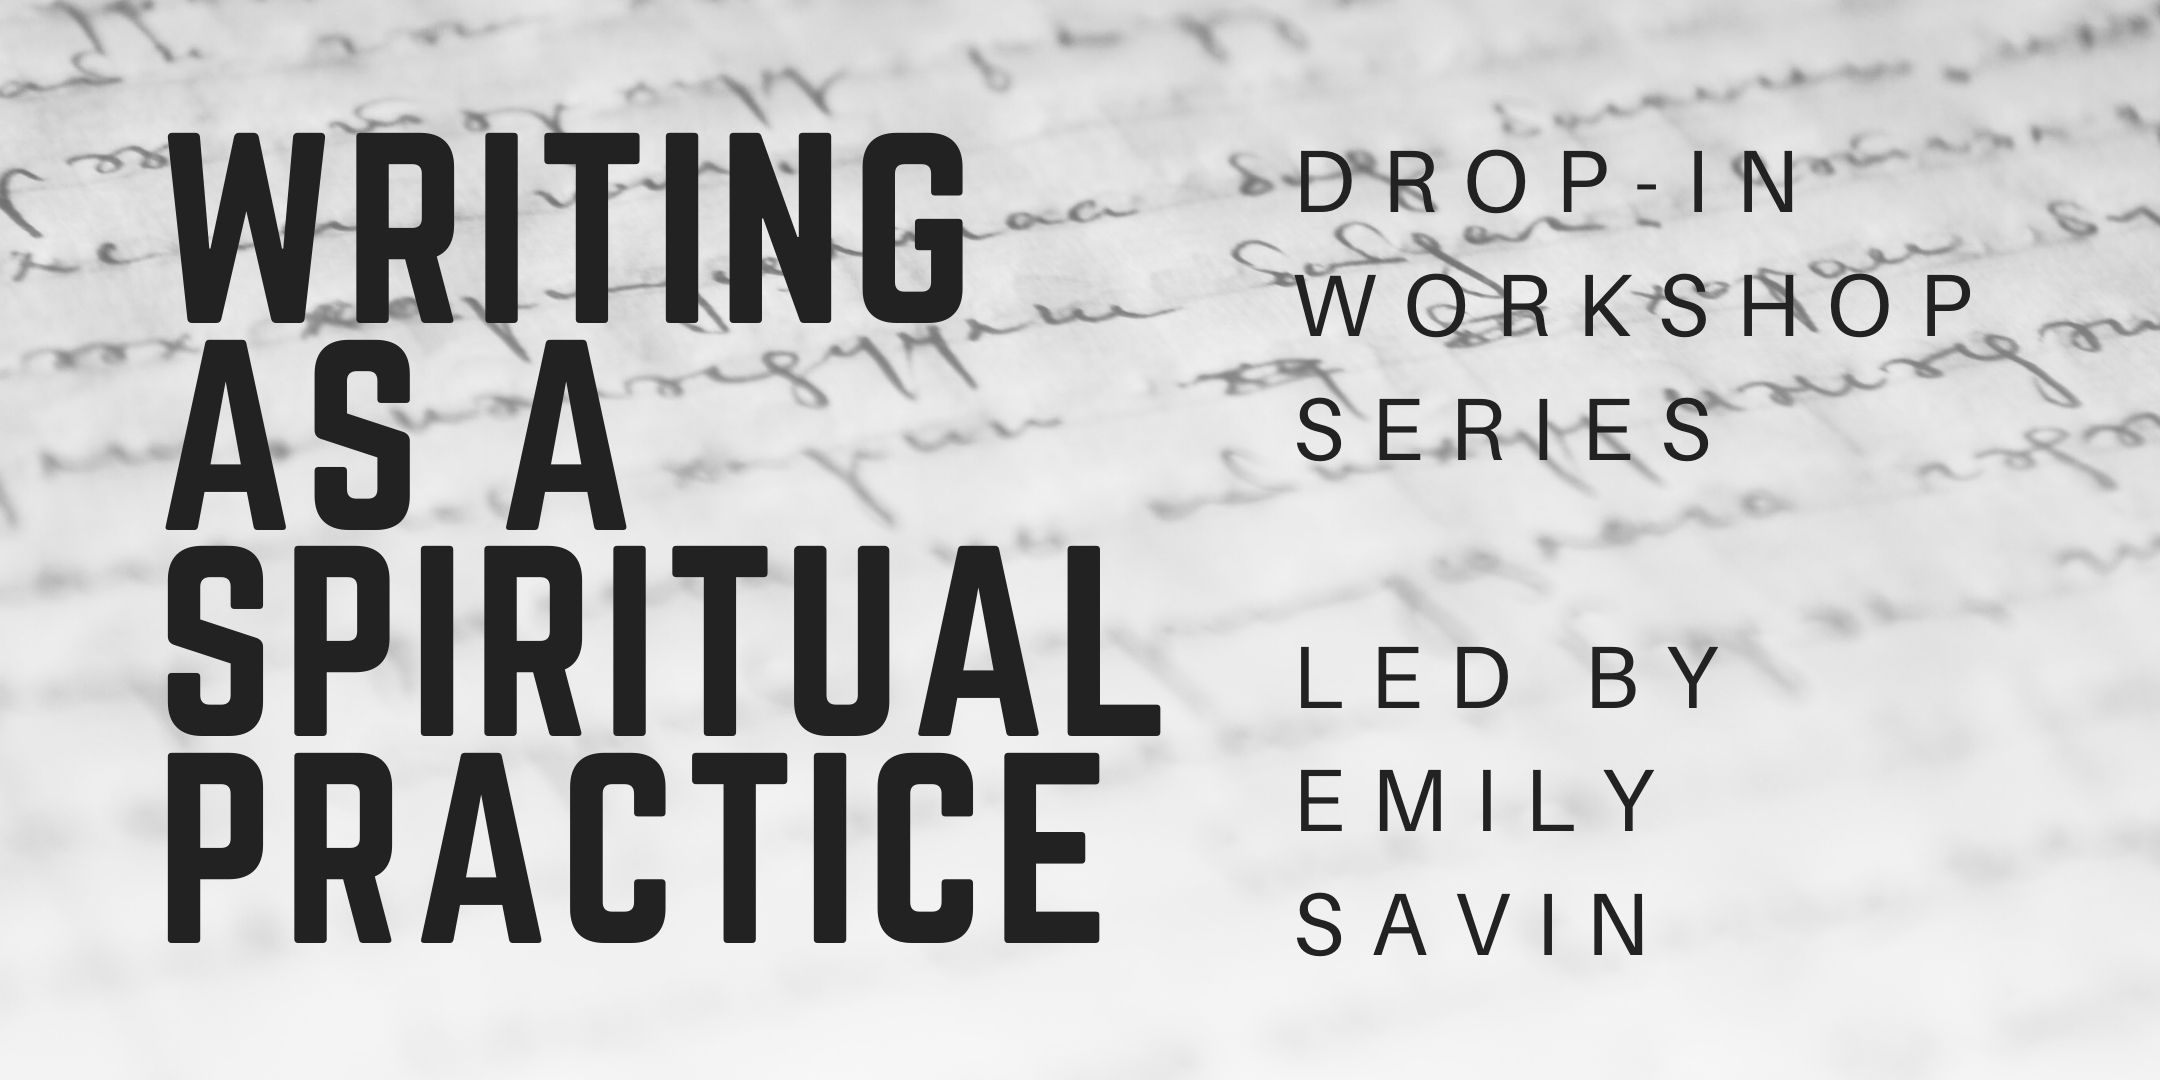 Virtual Writing as a spiritual practice drop-in workshops